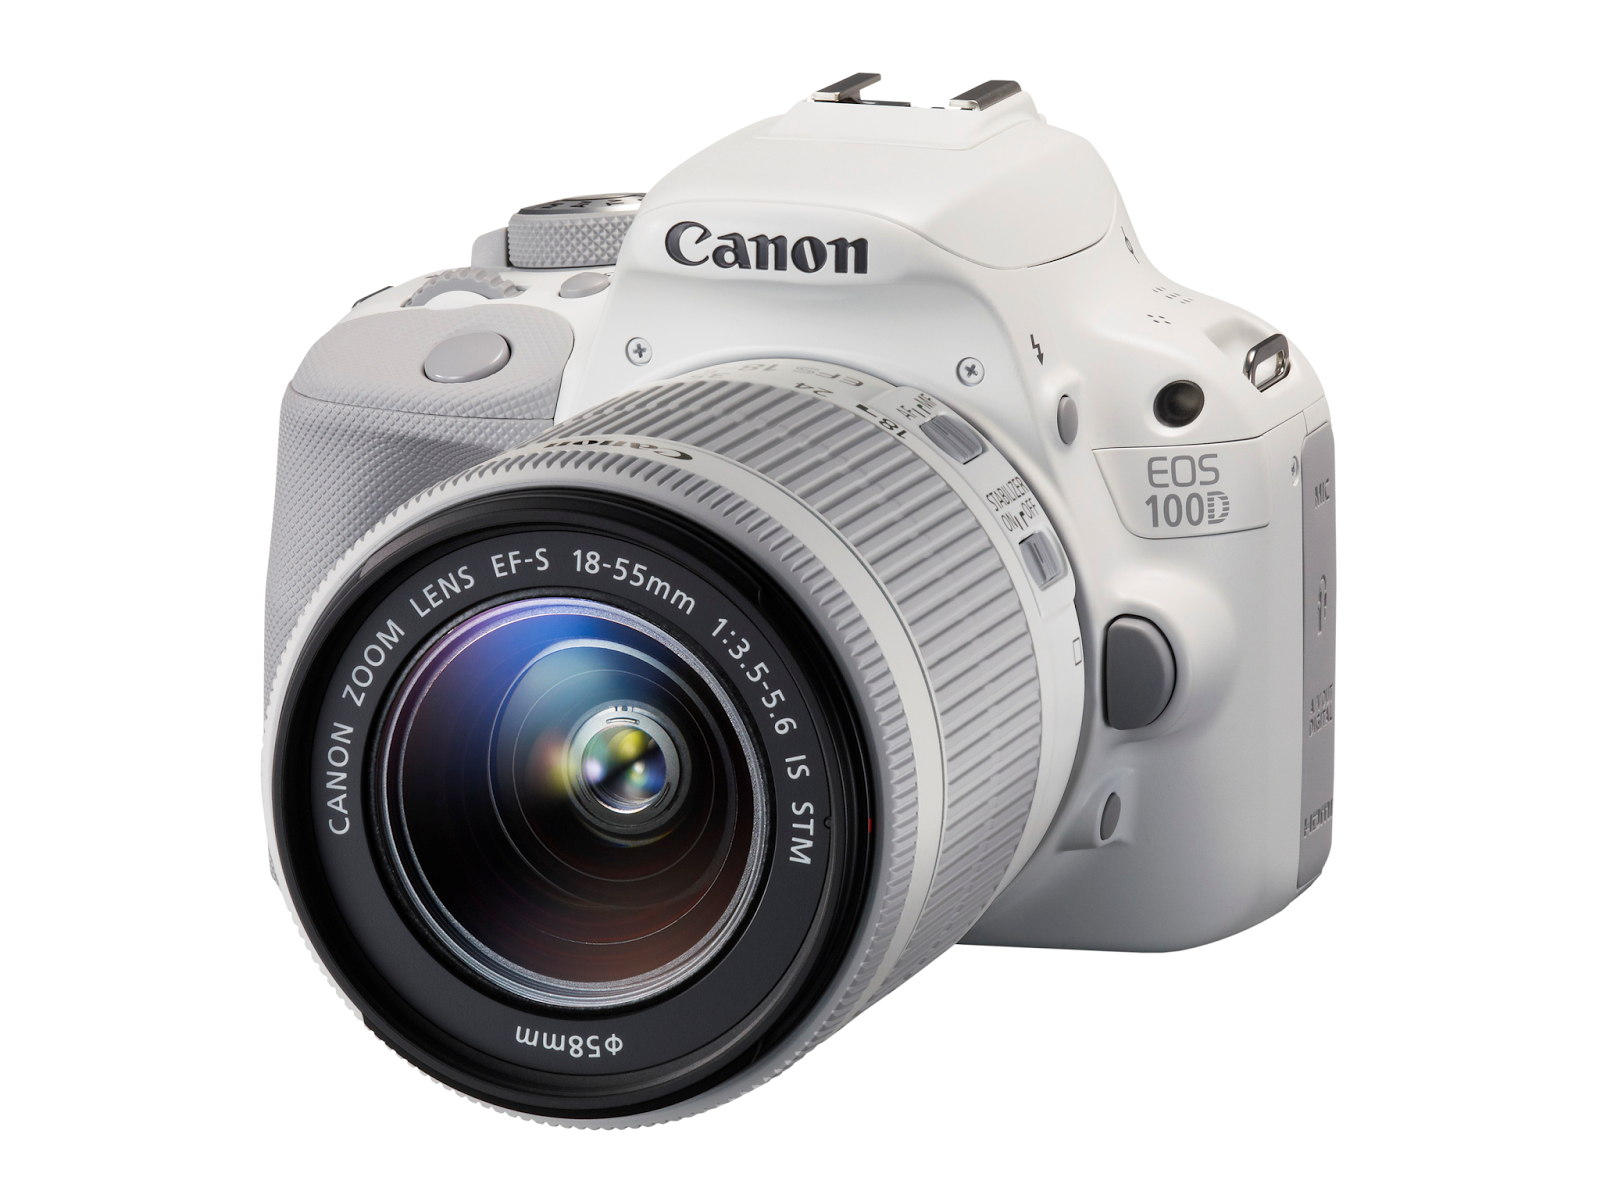 Canon EOS 100D and EF-S 18-55mm f/3.5-5.6 IS STM lens